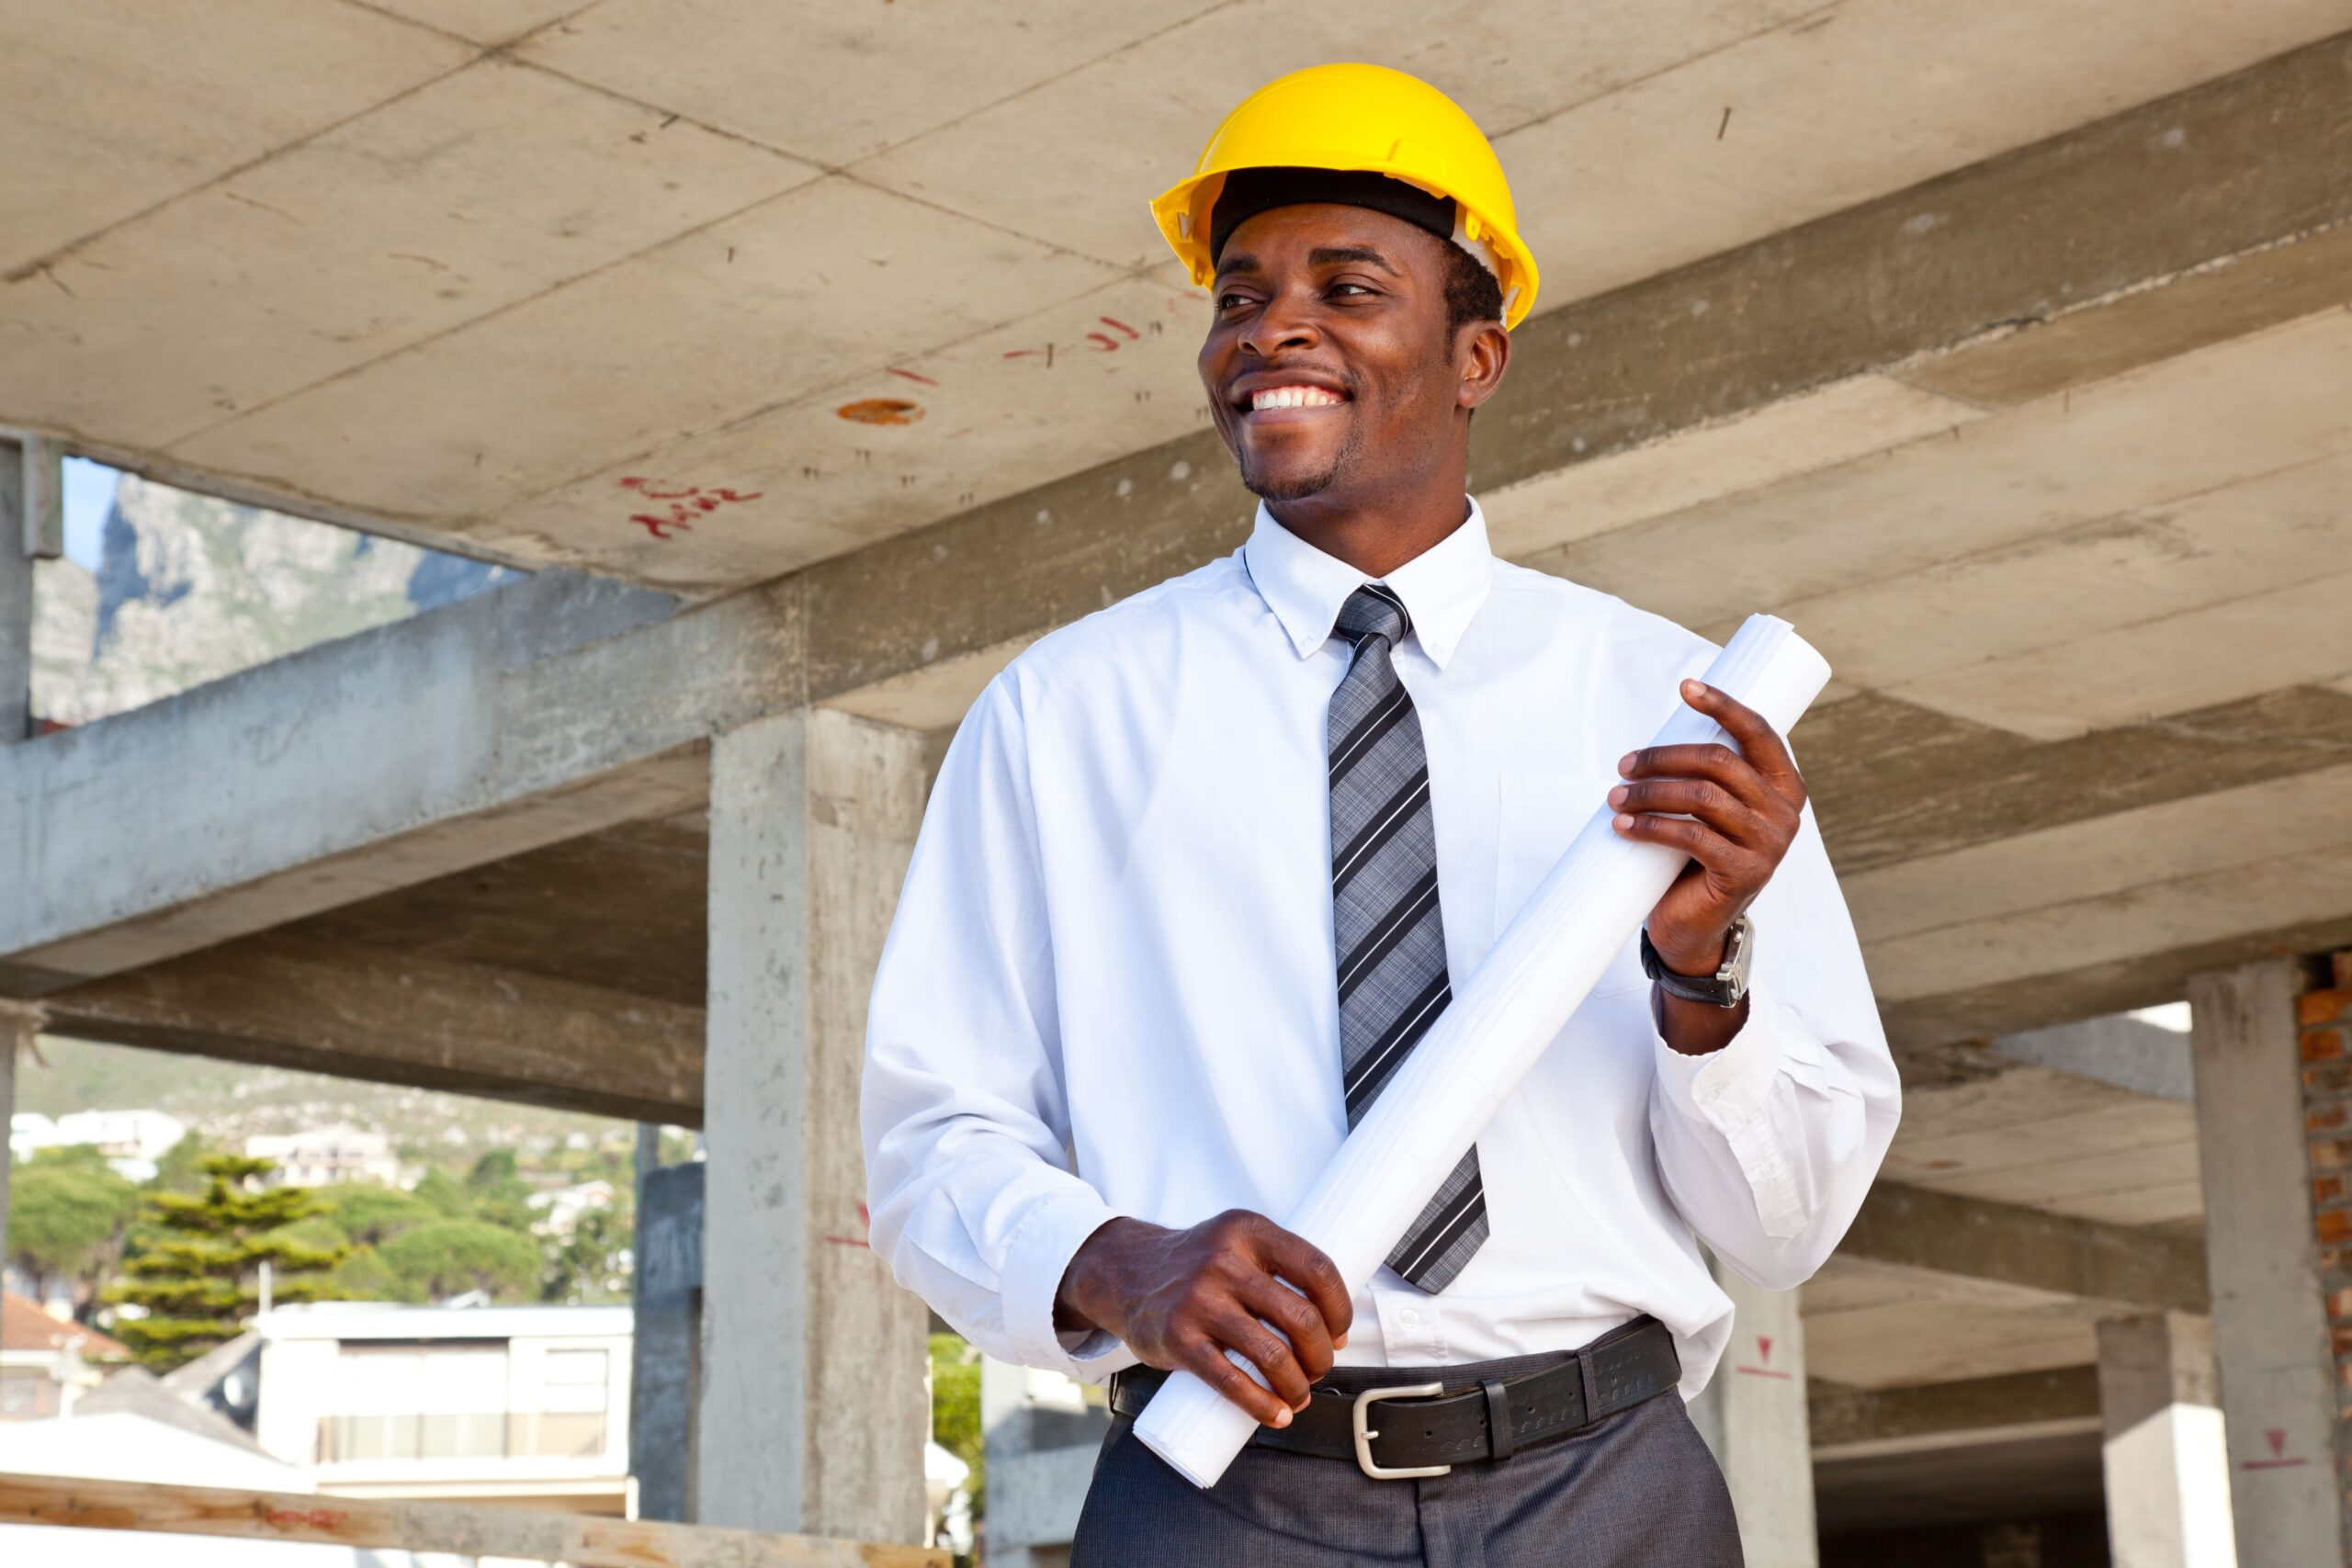 construction and building company worker